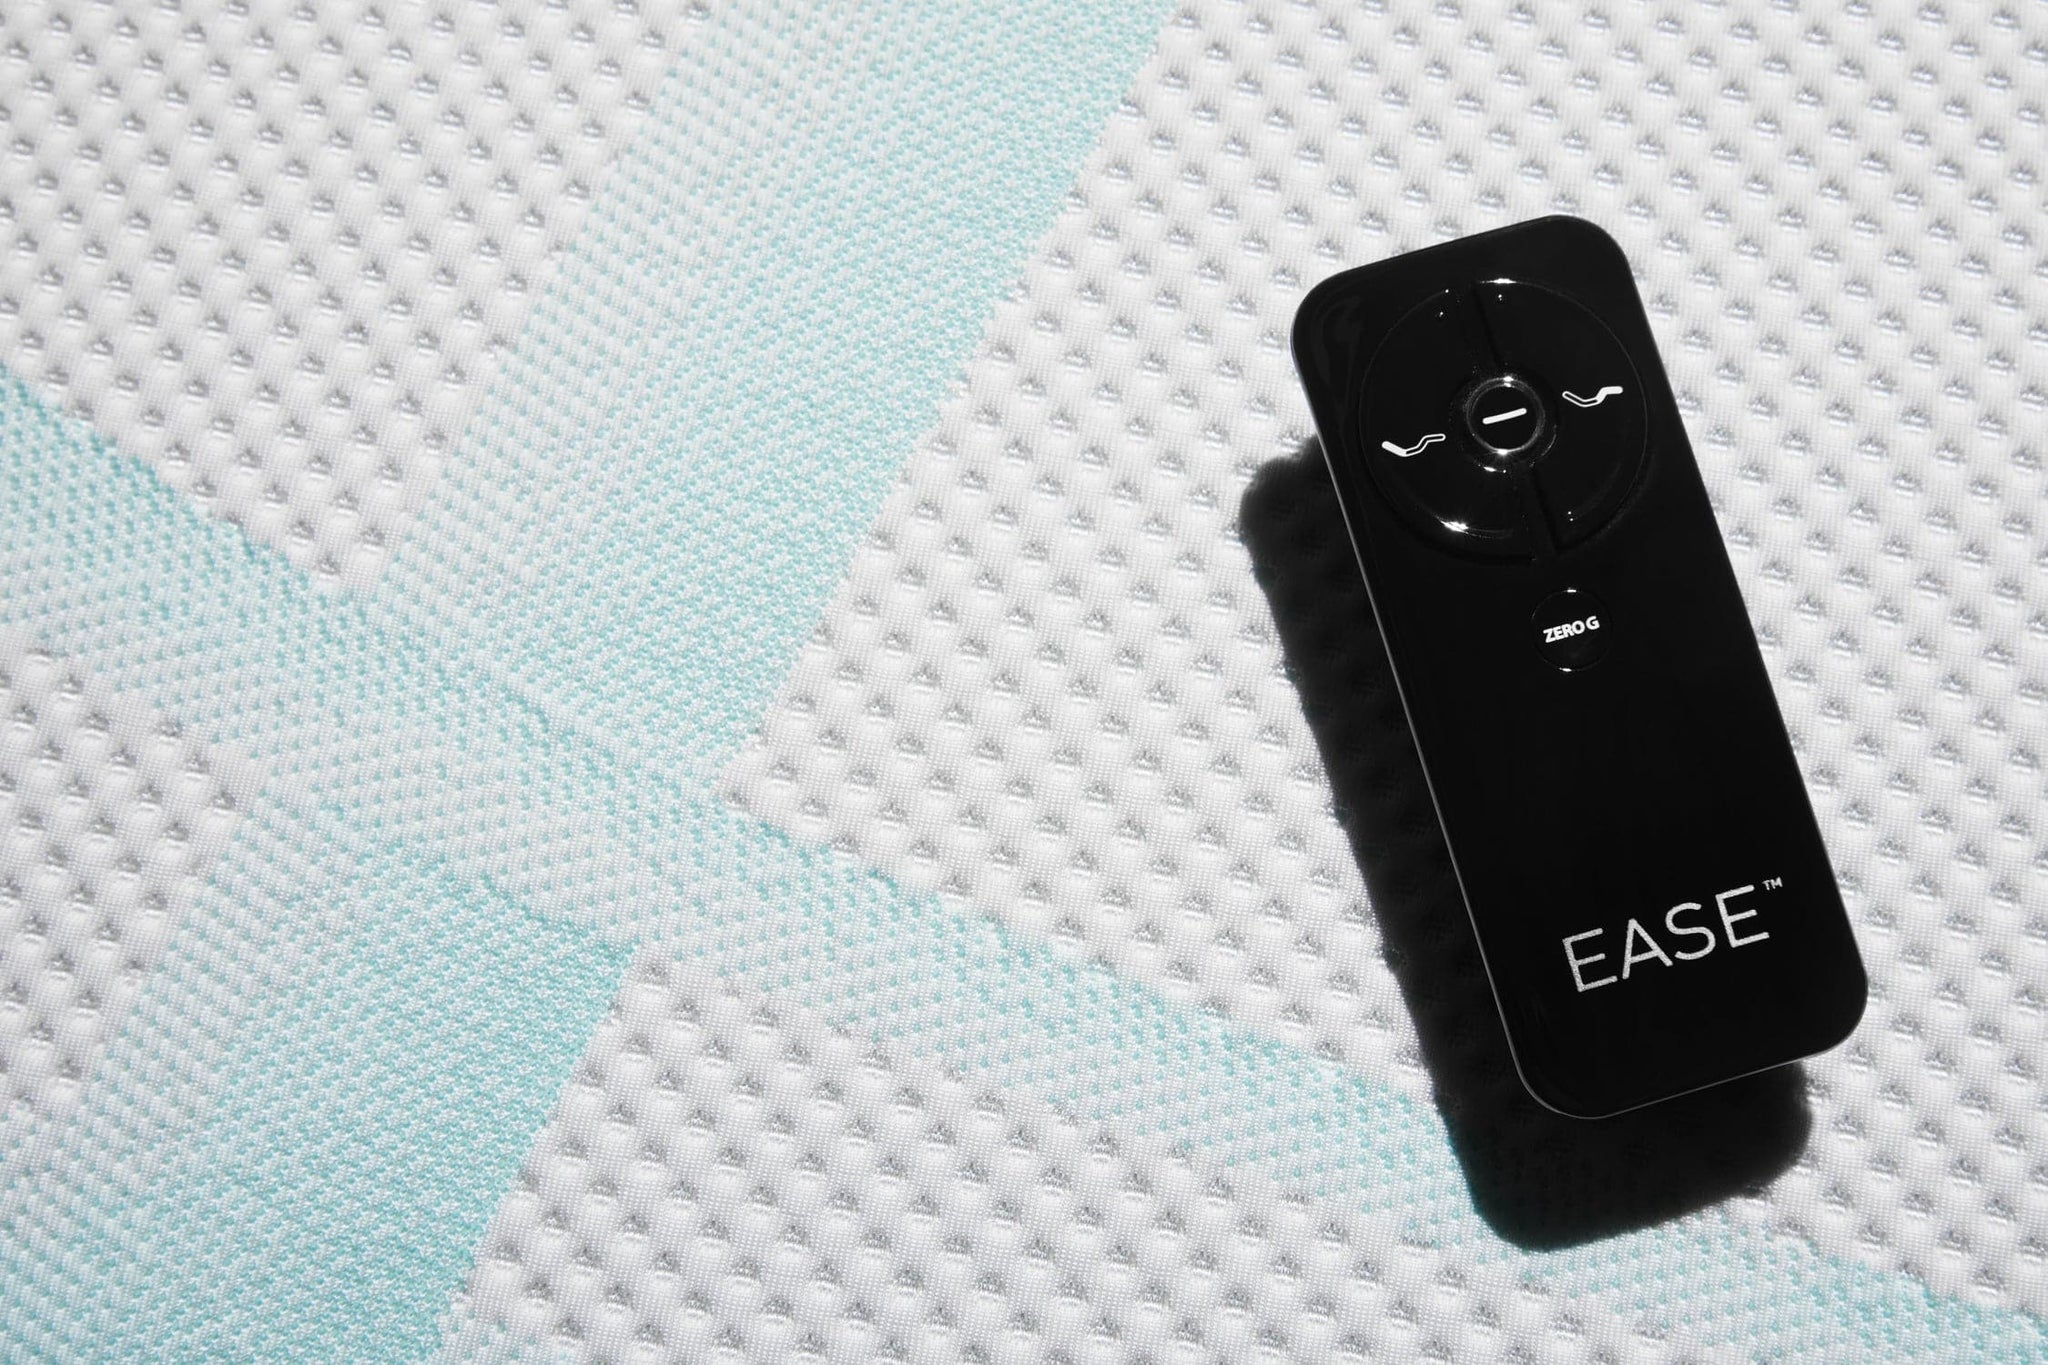 Ease 3.0 Adjustable Base